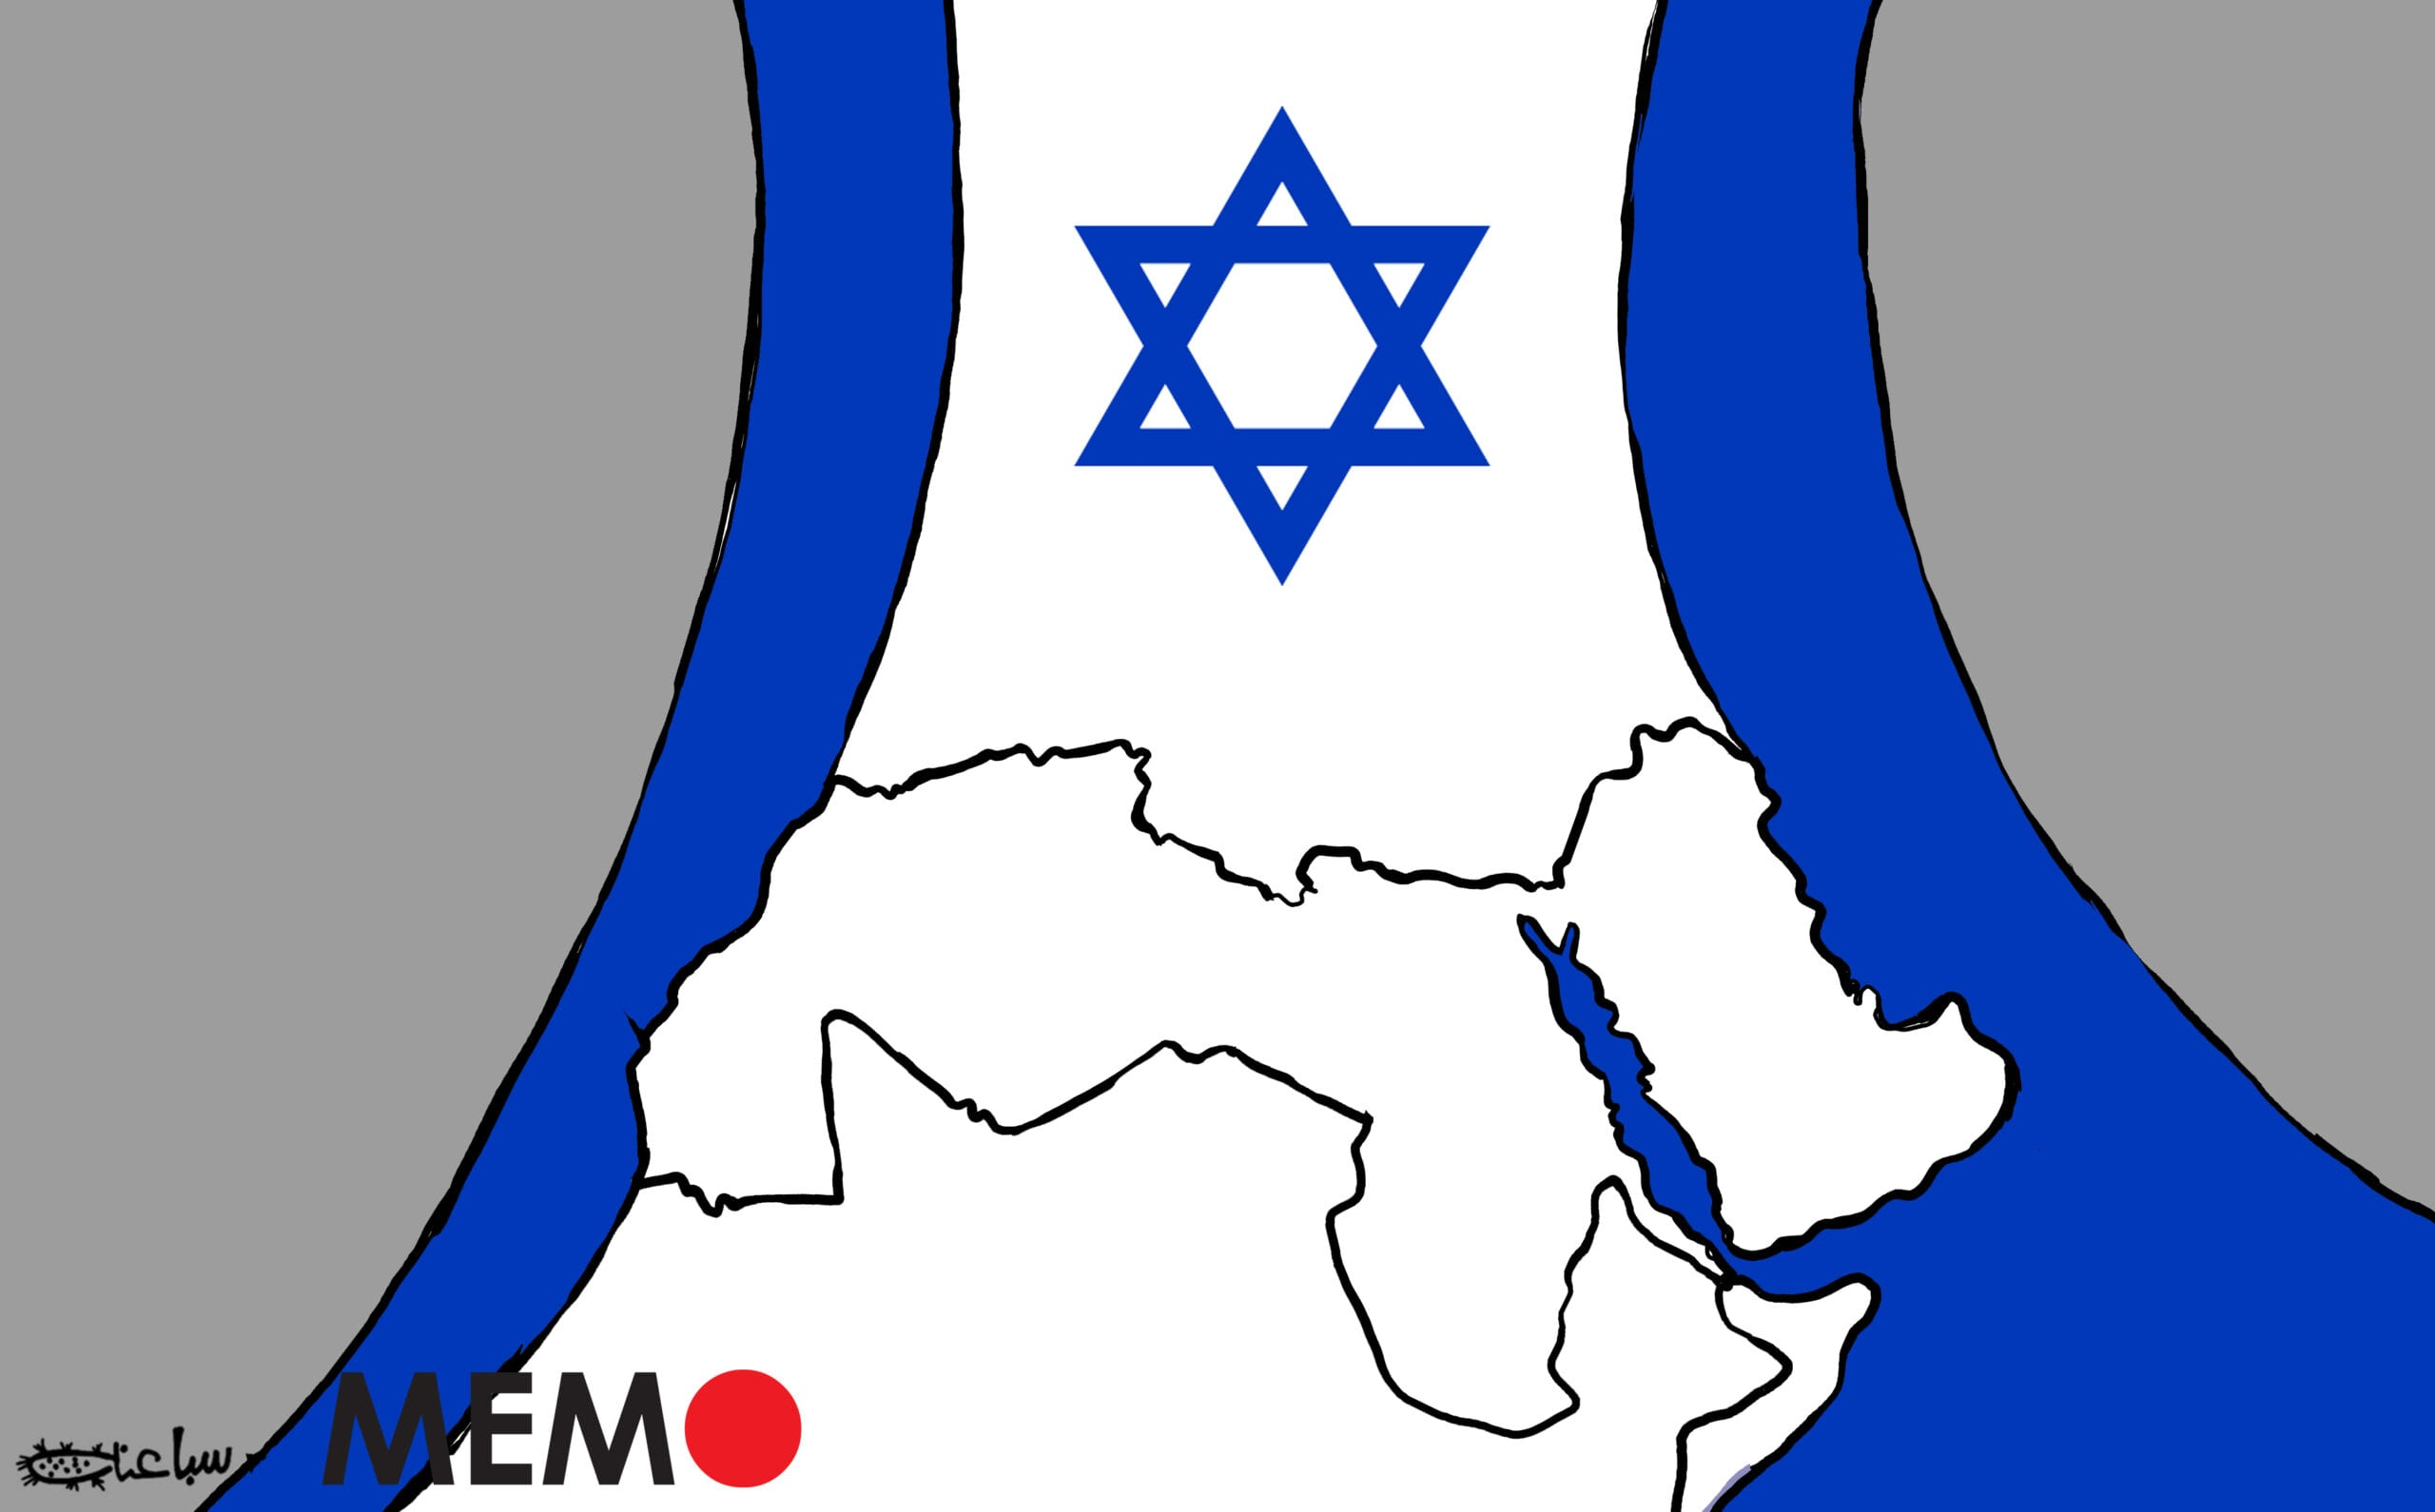 A growing number of countries in the MENA region are normalising ties with Israel - Cartoon [Sabaaneh/MiddleEastMonitor]